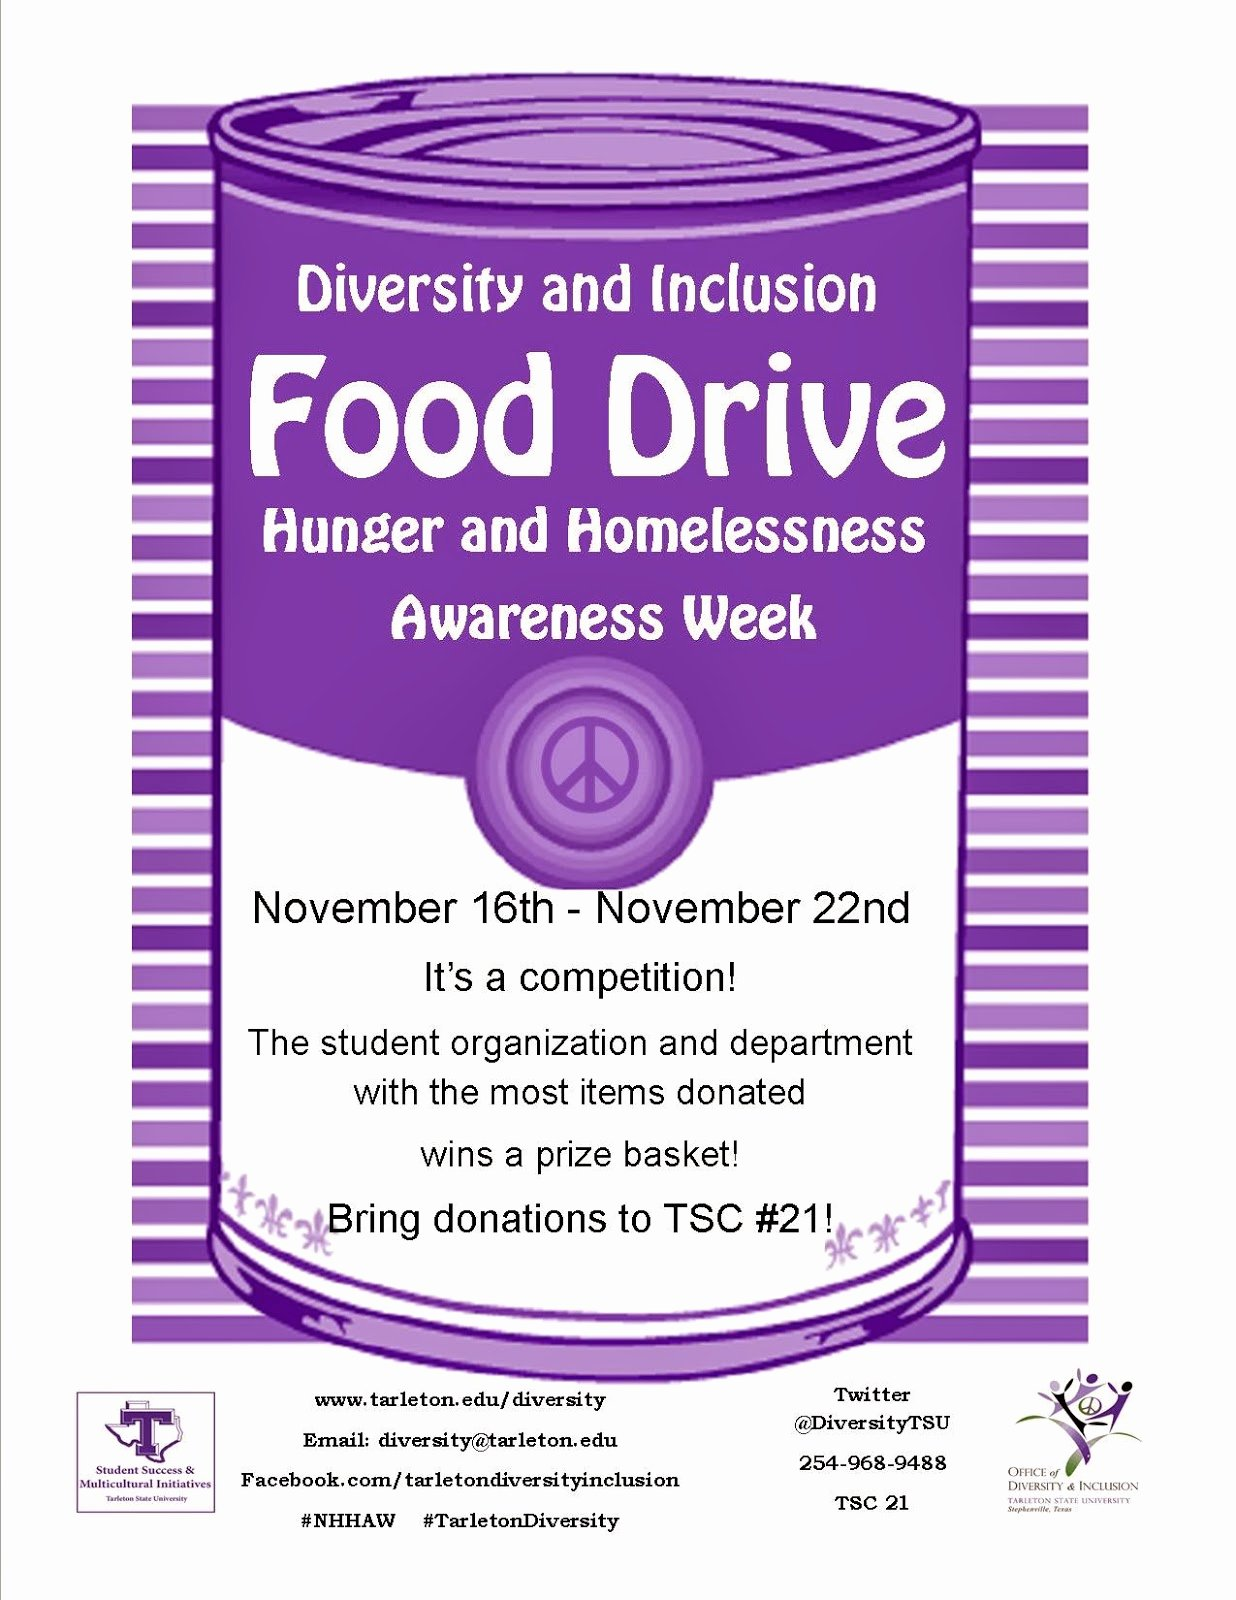 Canned Food Drive Flyer Awesome Diversity and Inclusion Tarleton State University November 2013